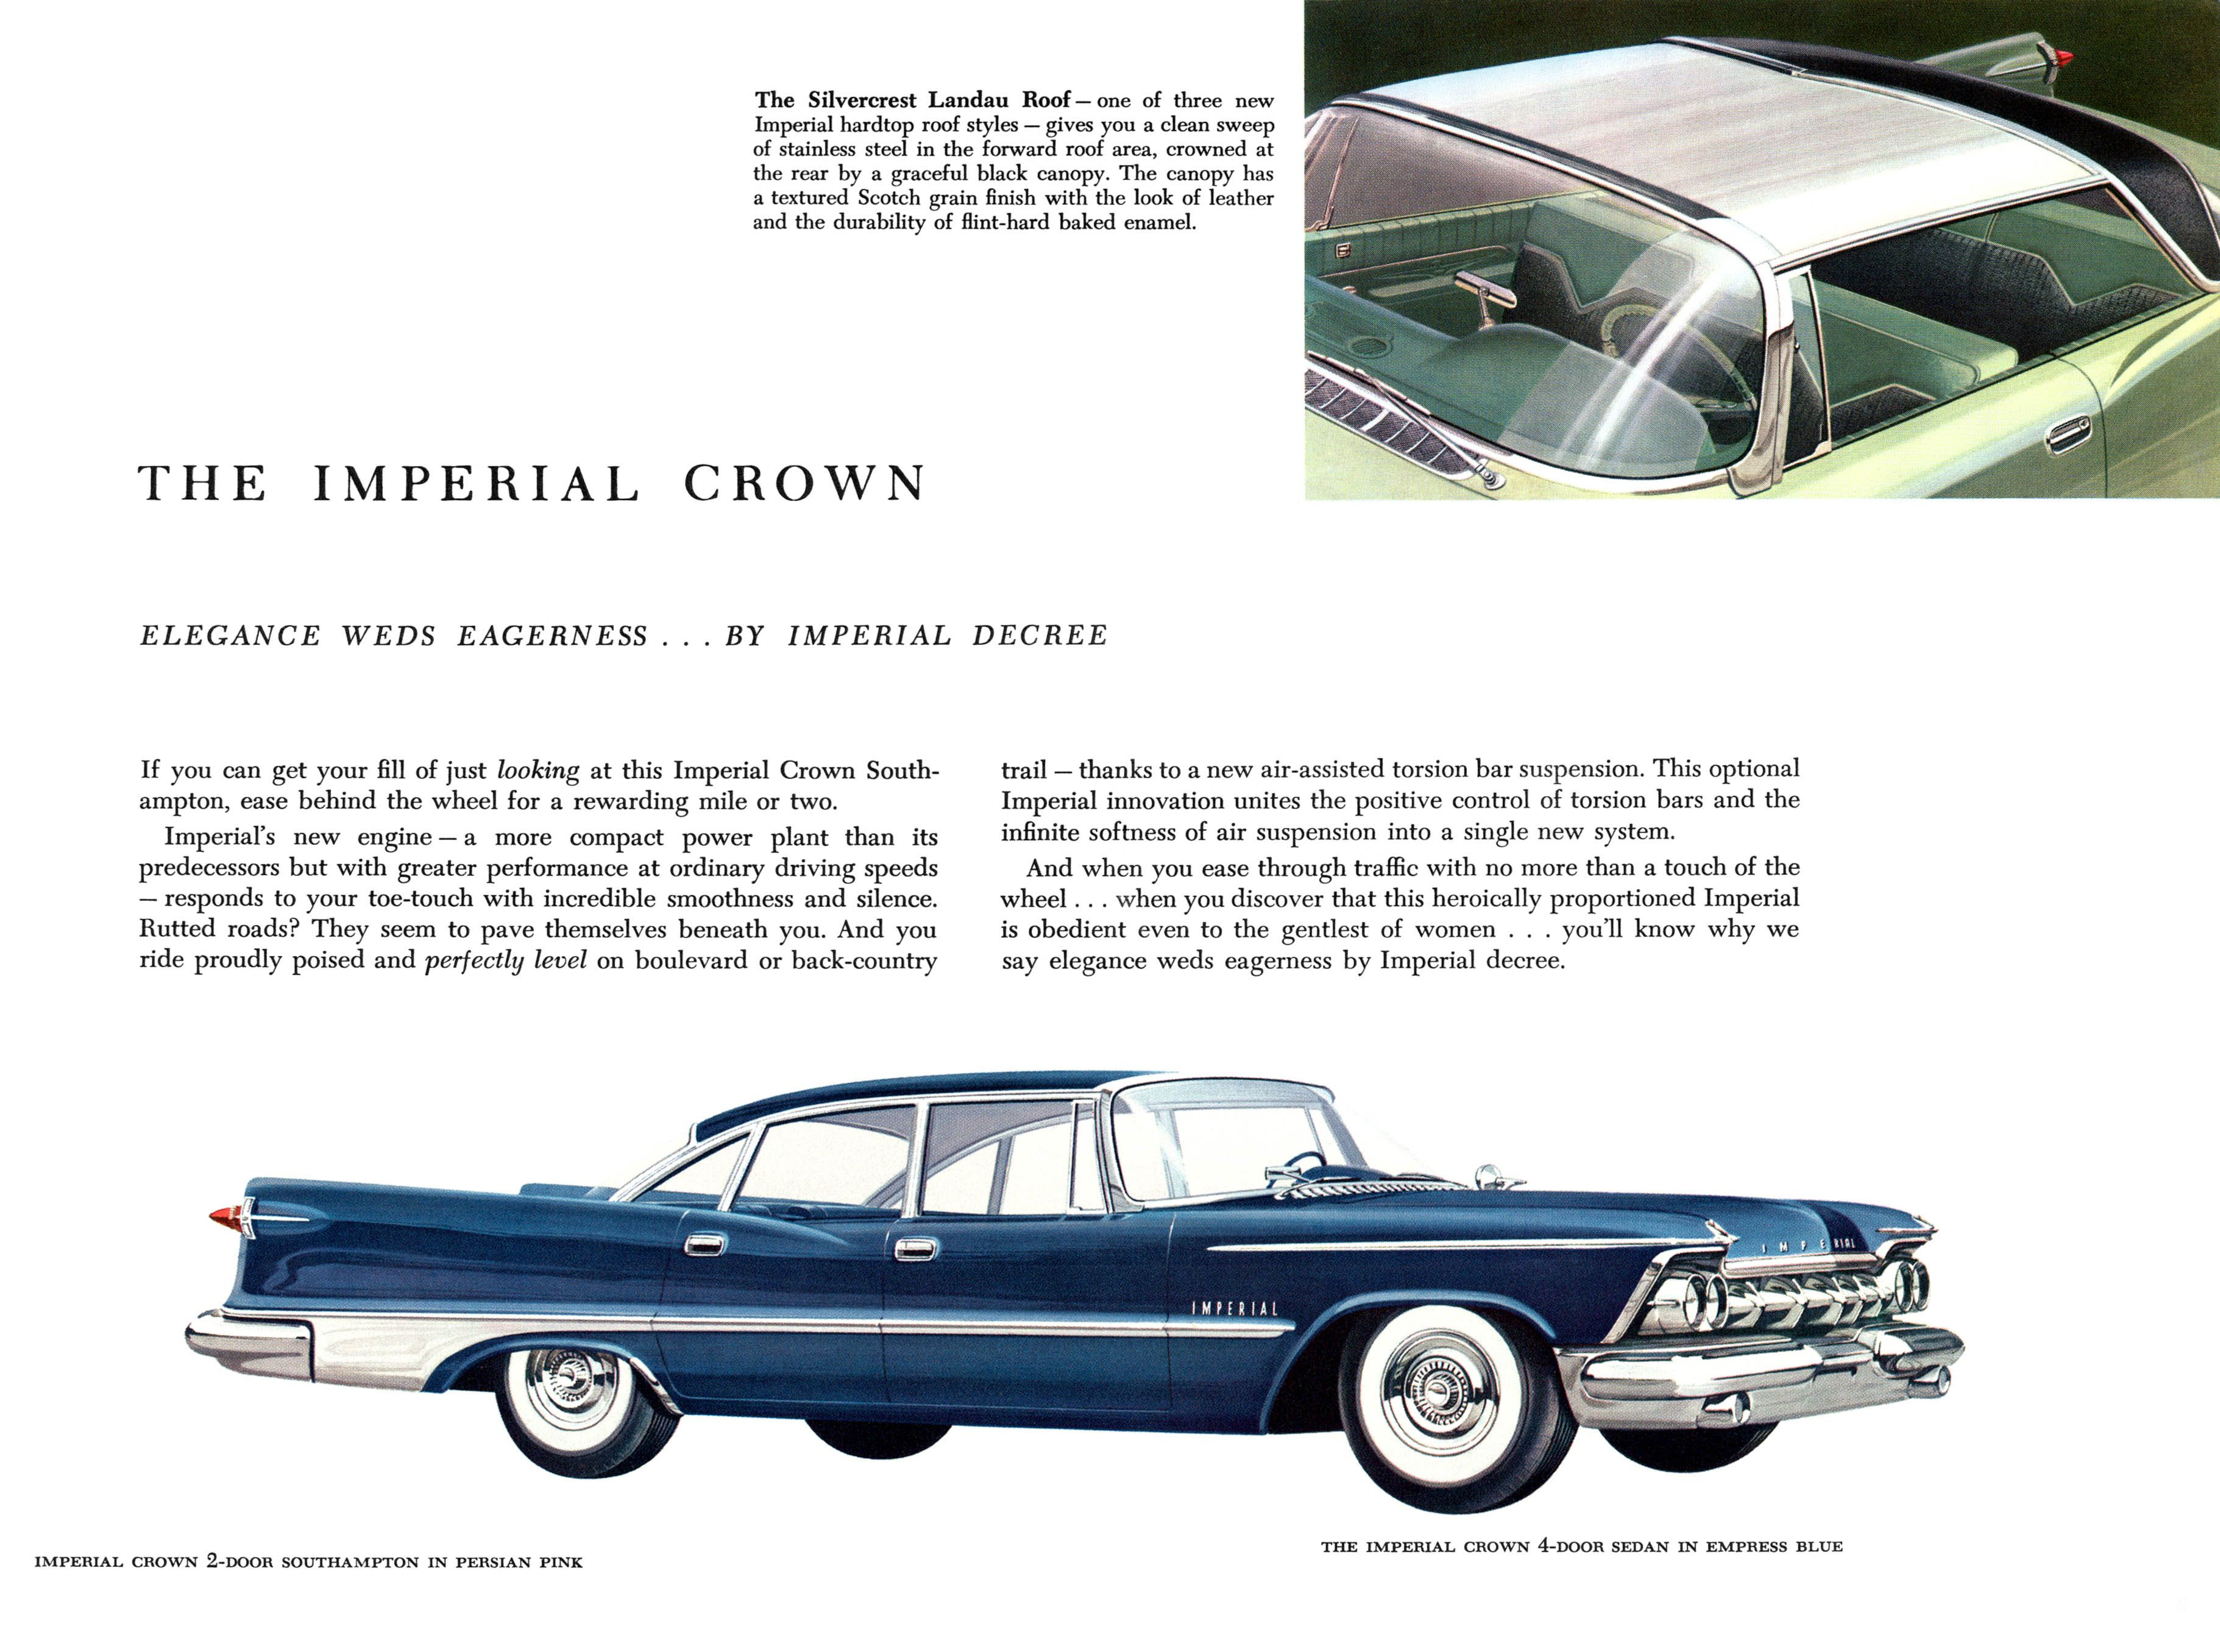 Cars elegance weds eagerness by imperial decree 1959 chrysler imperial crown